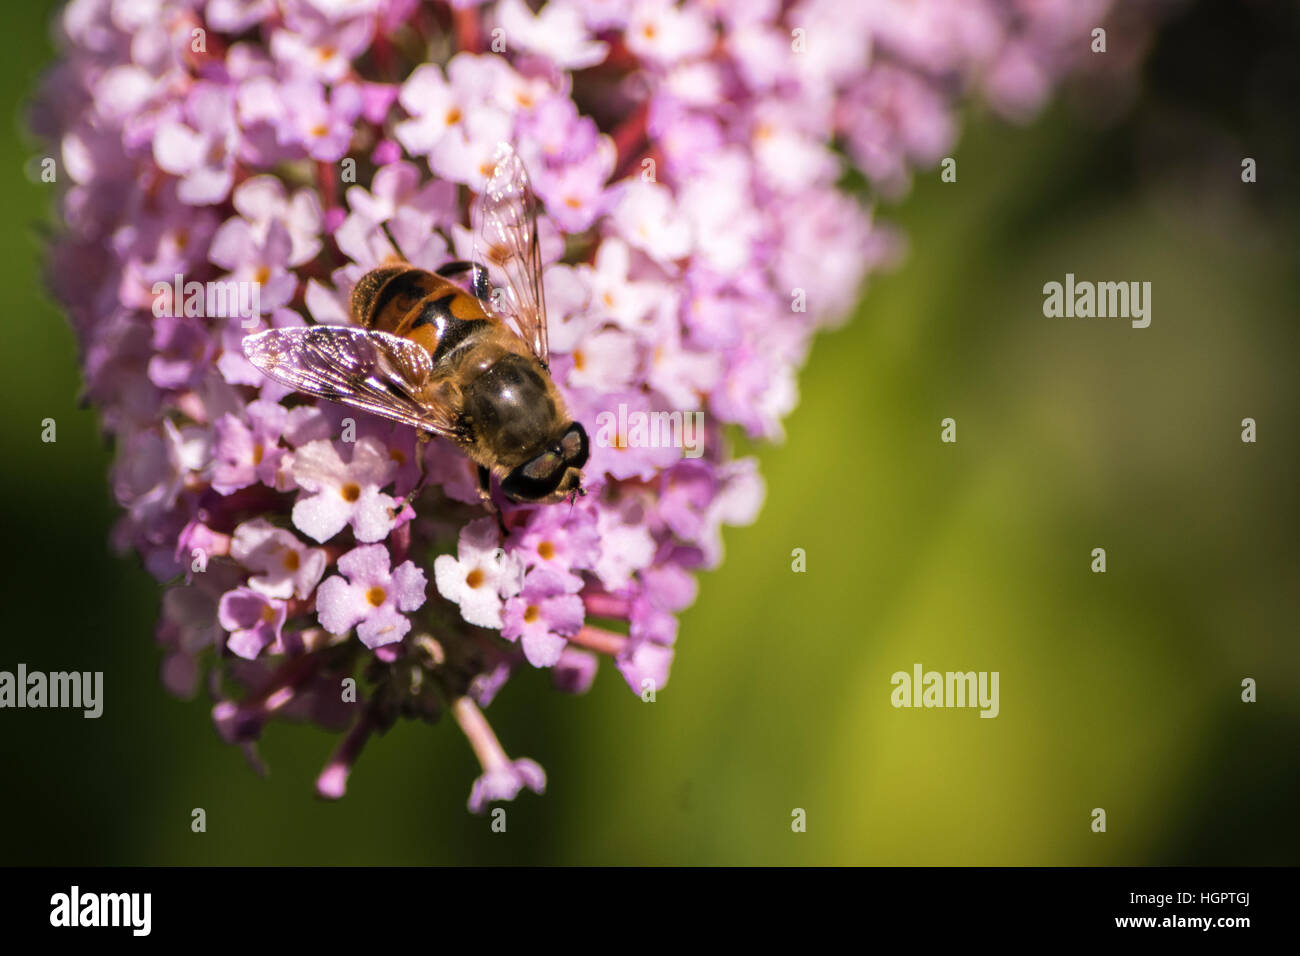 bee pollinating flower - Stock Image